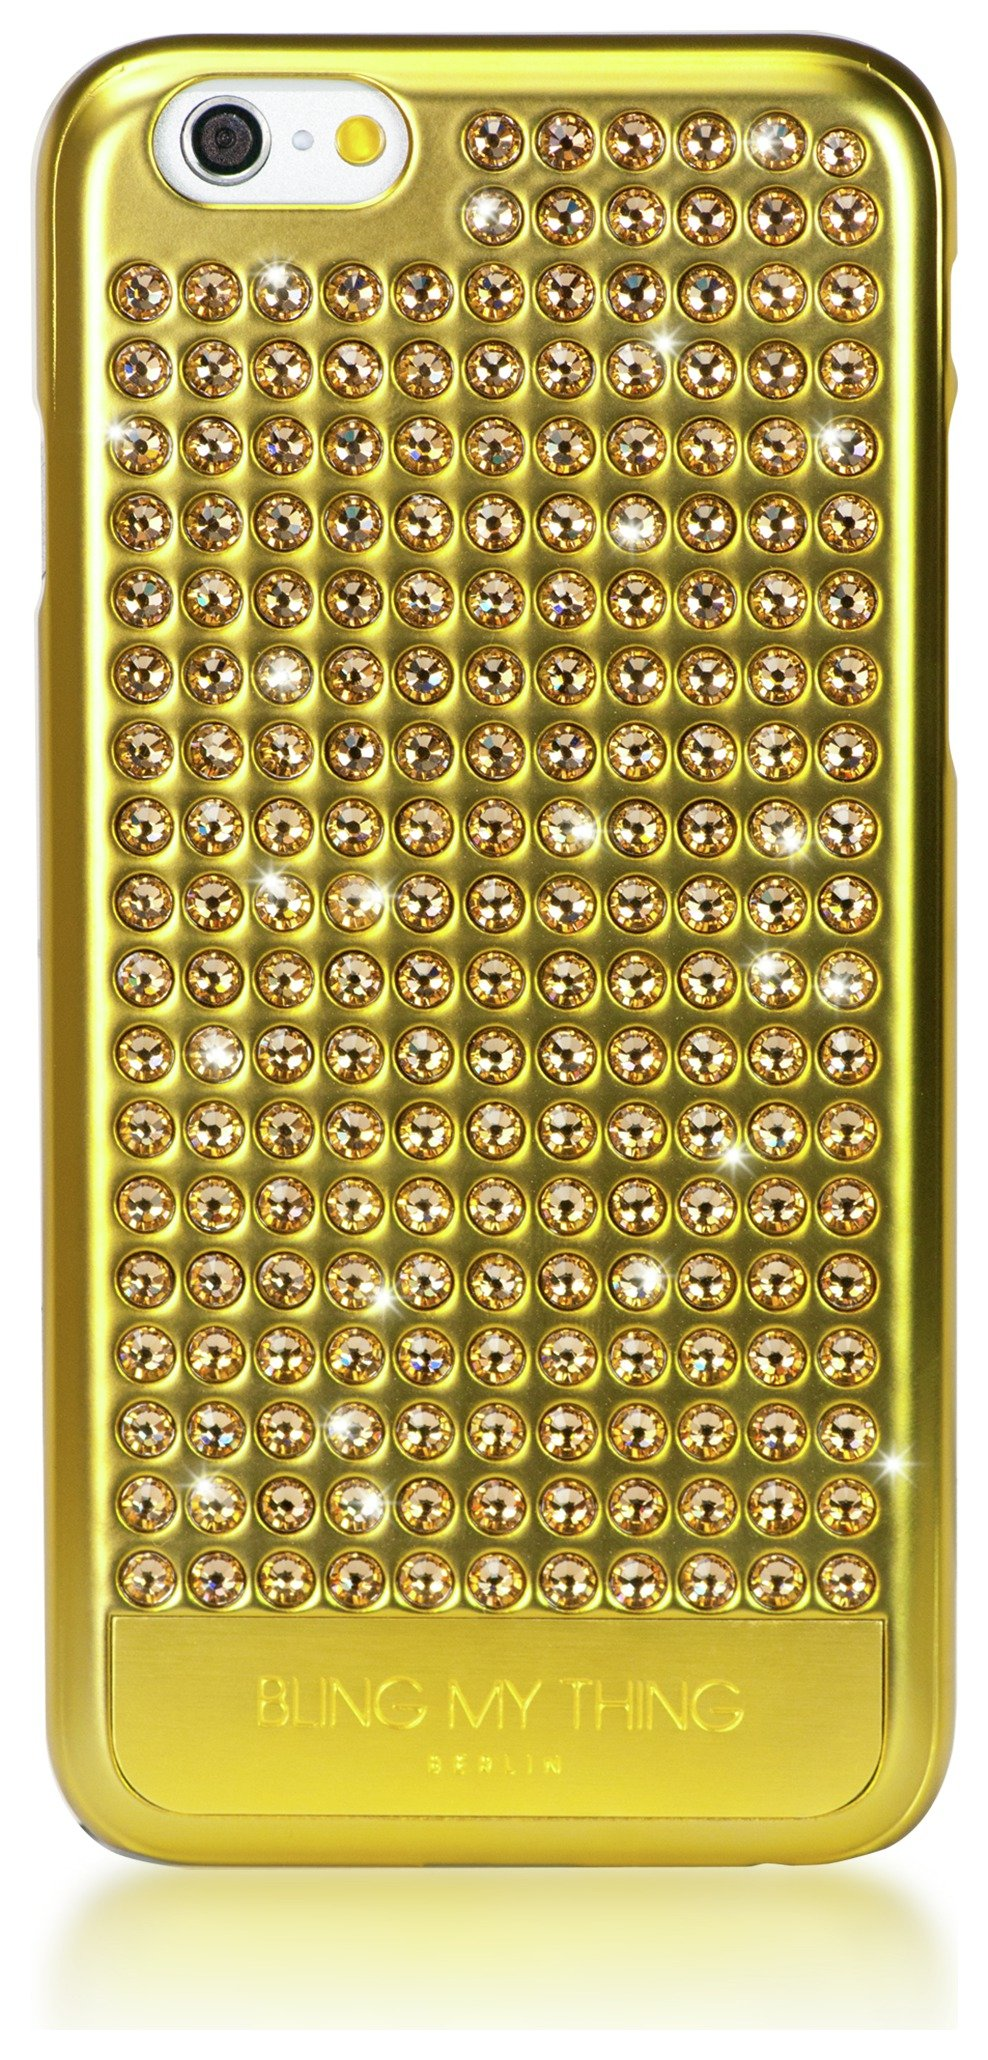 Image of Bling My Thing iPhone 6 Plus Case - Extravaganza Gold